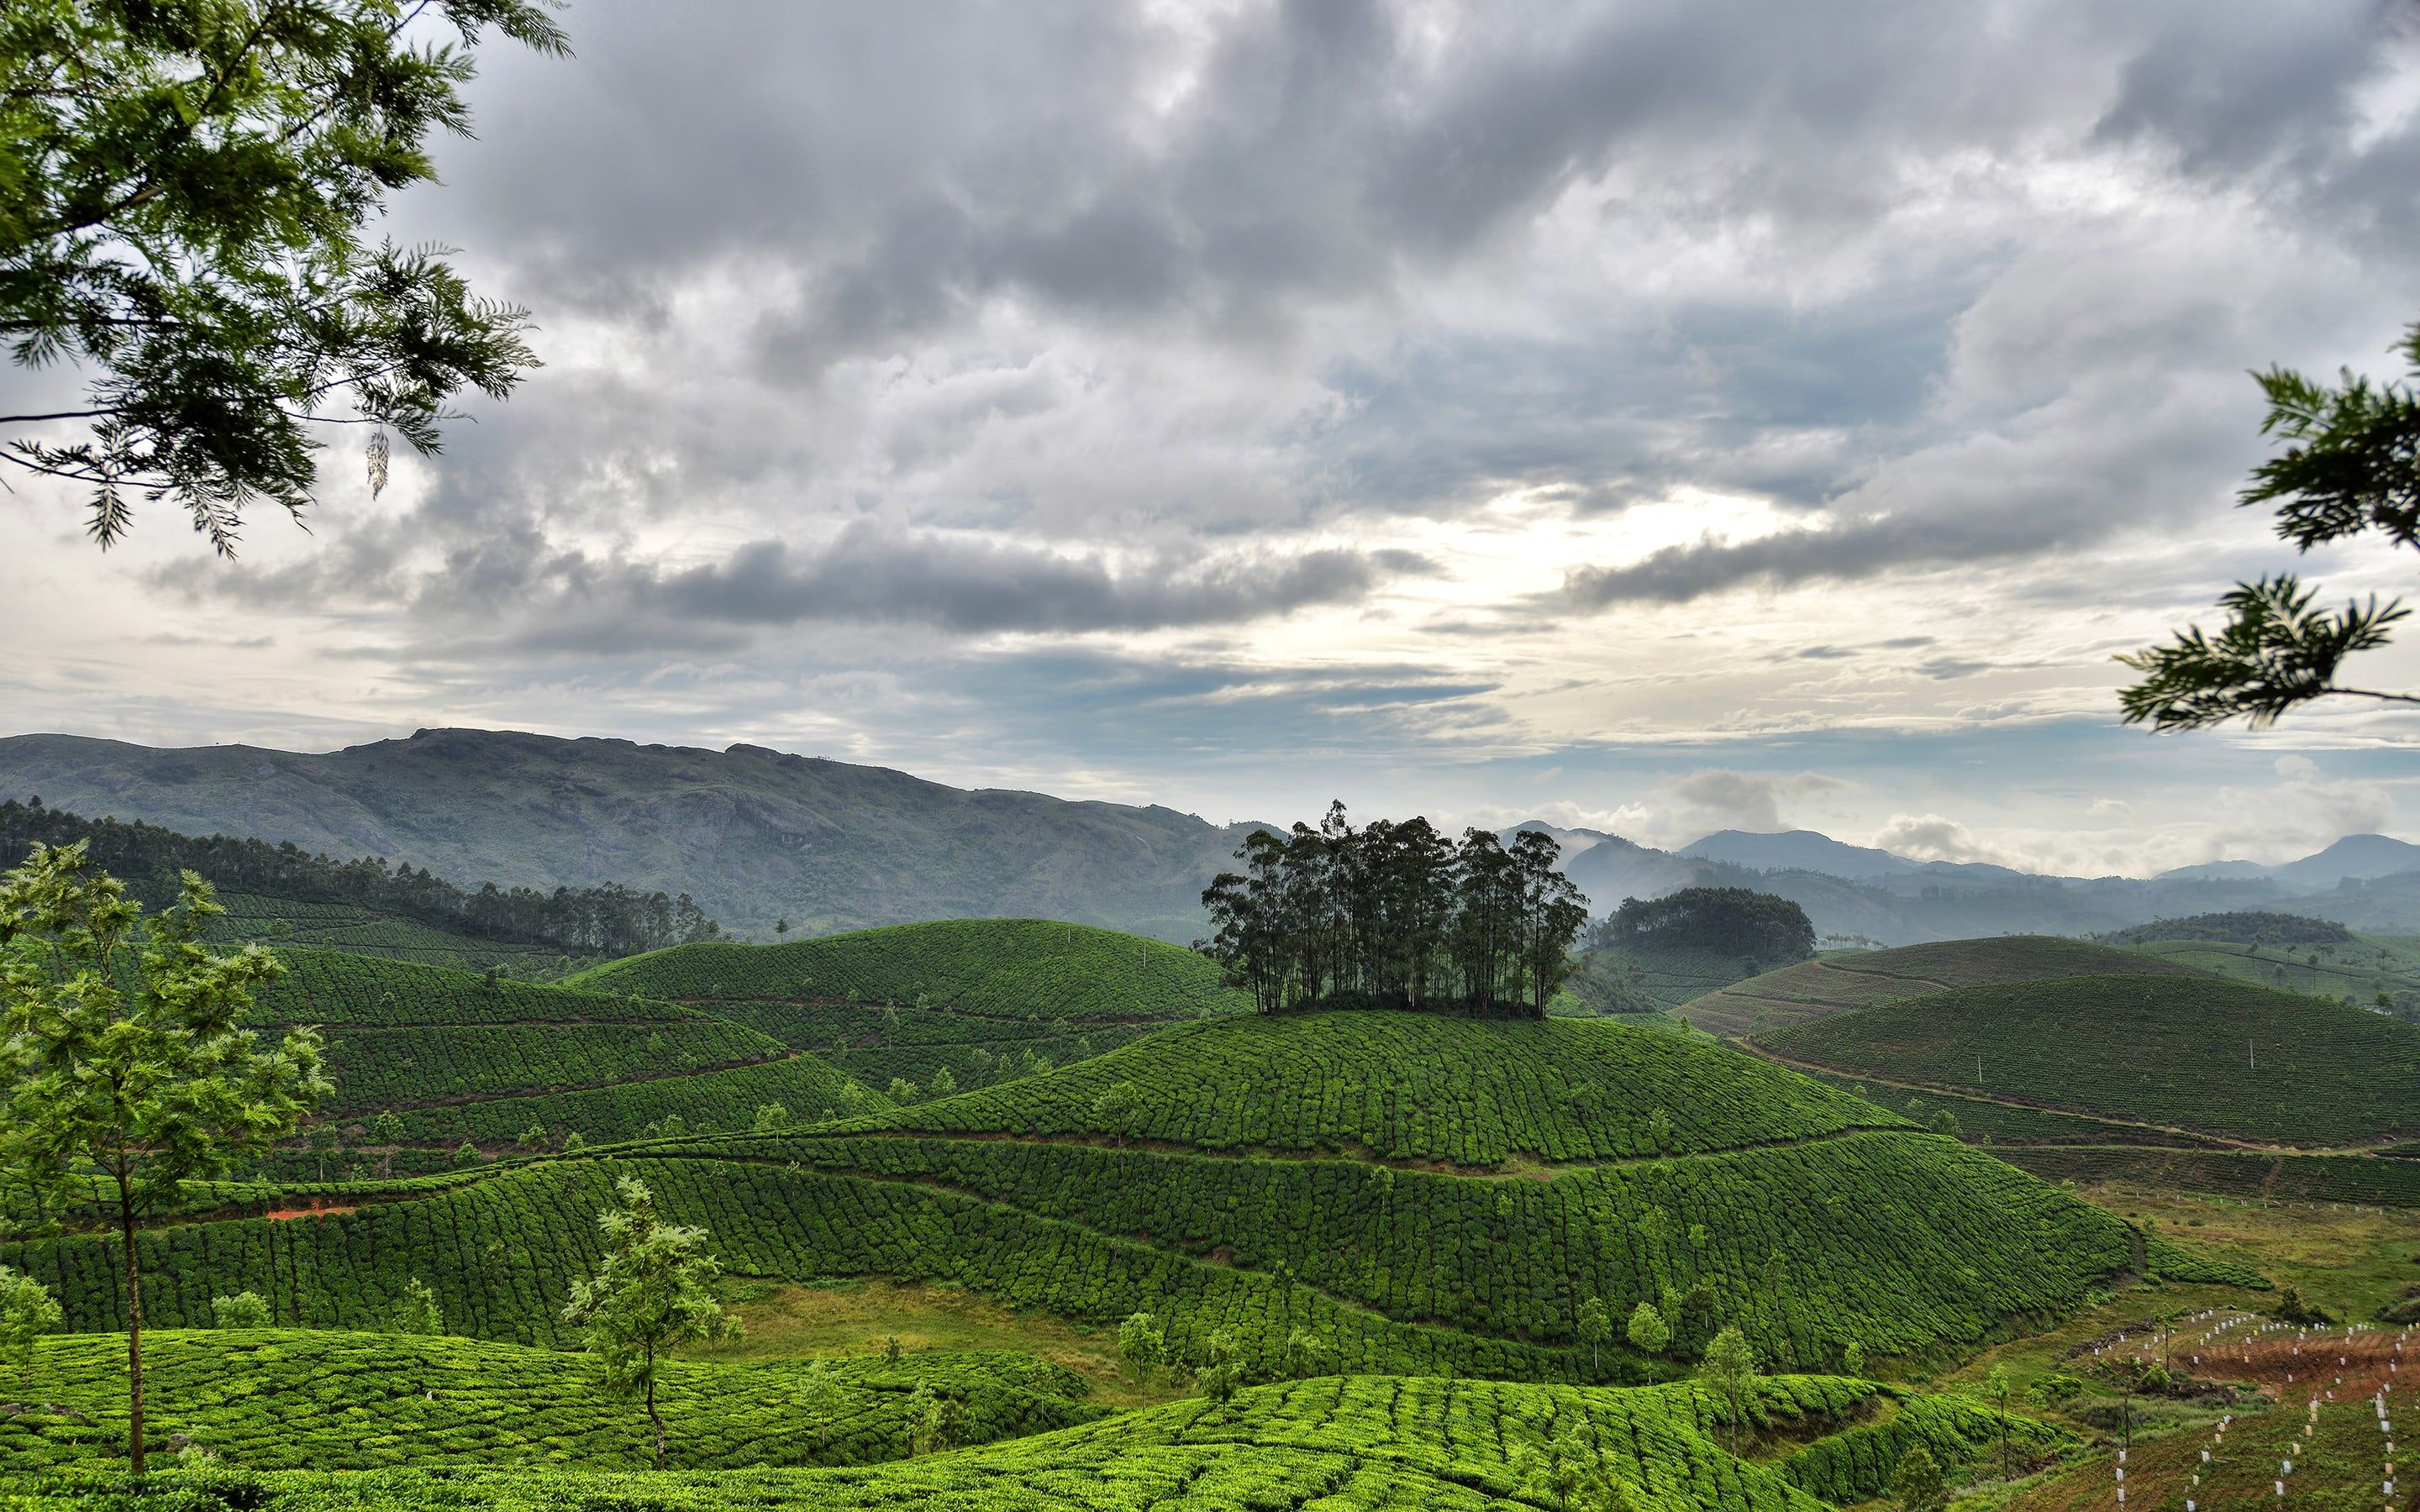 Green Trees During Day Time Photo Nature Landscape Hills Trees Clouds India Field Plants Mo Tea Garden Computer Wallpaper Desktop Wallpapers Wallpaper